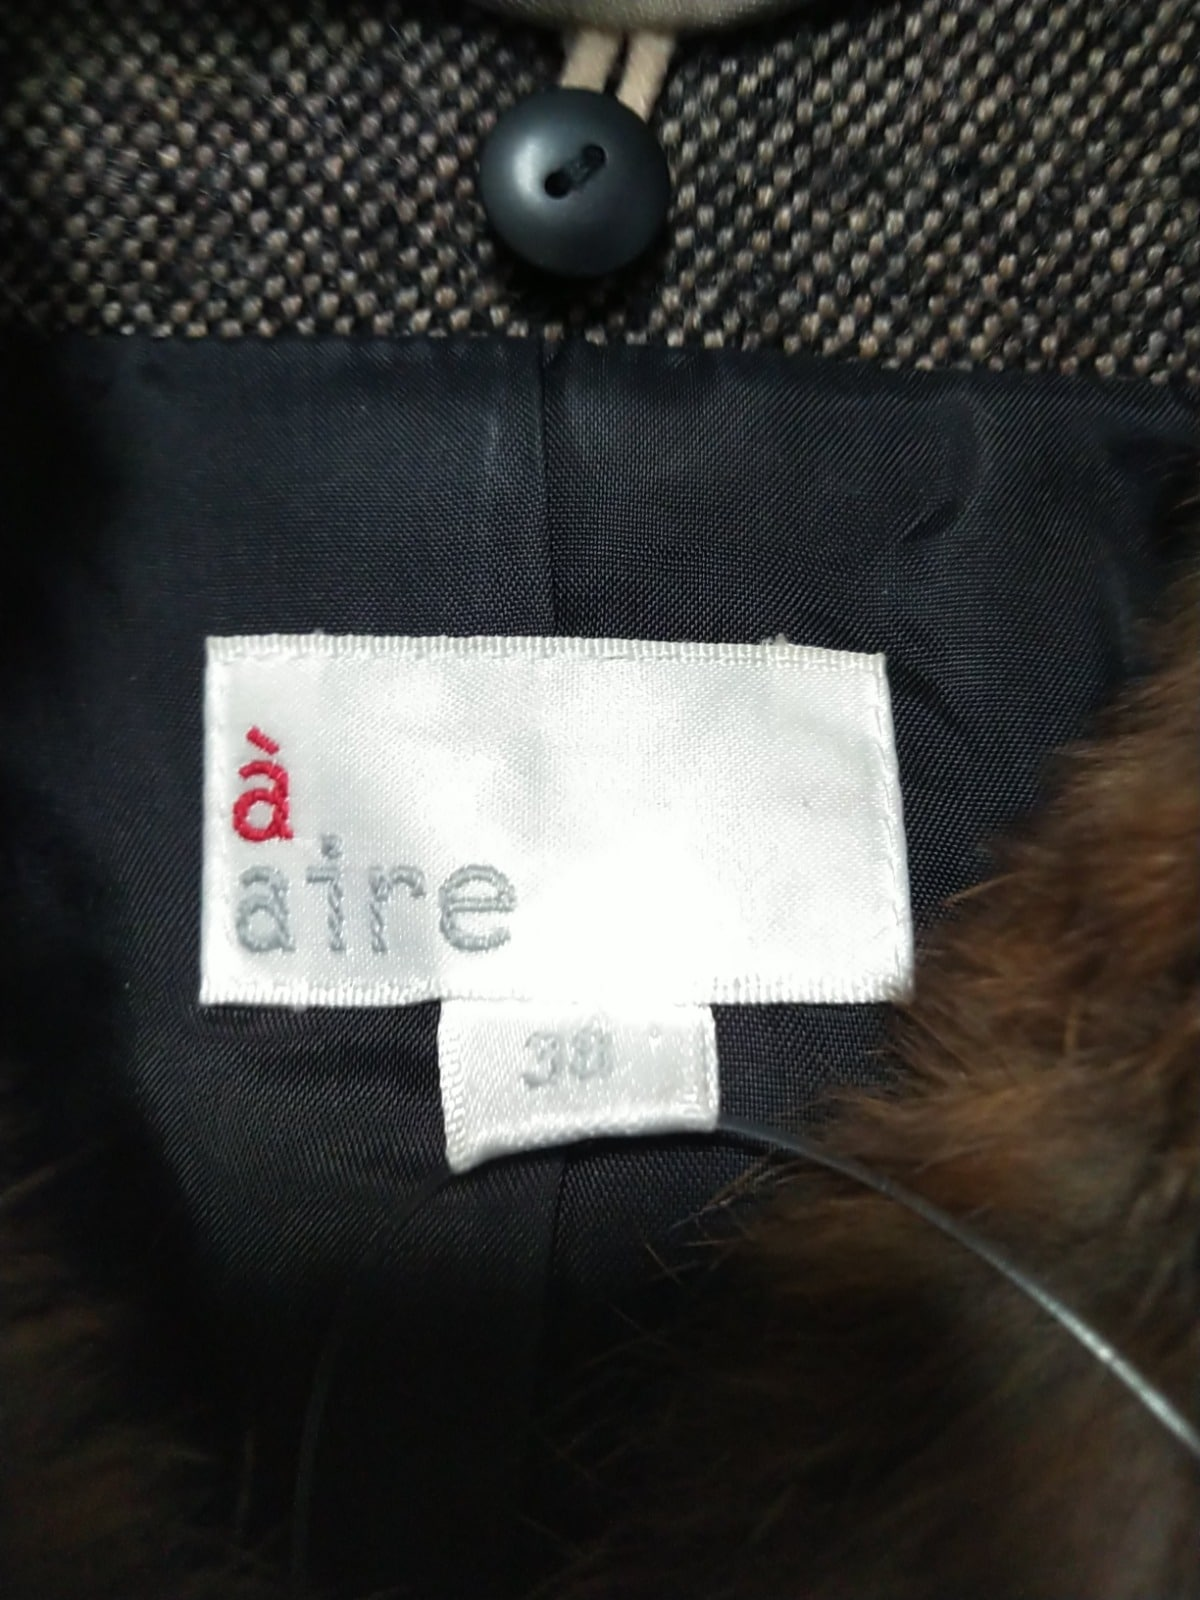 a' aire(アエル)のコート